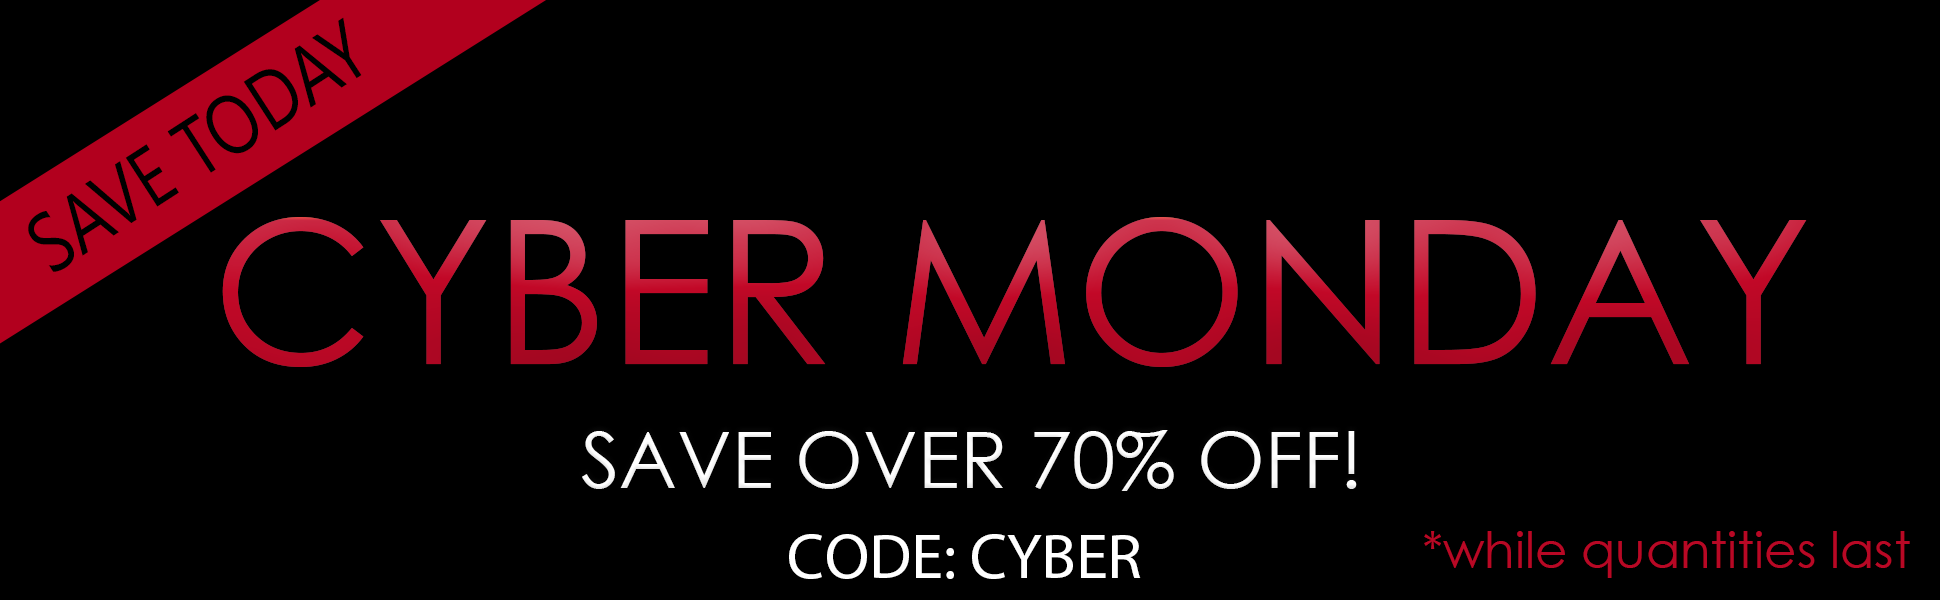 cyber-monday-172-970x300-1940x600rev.png